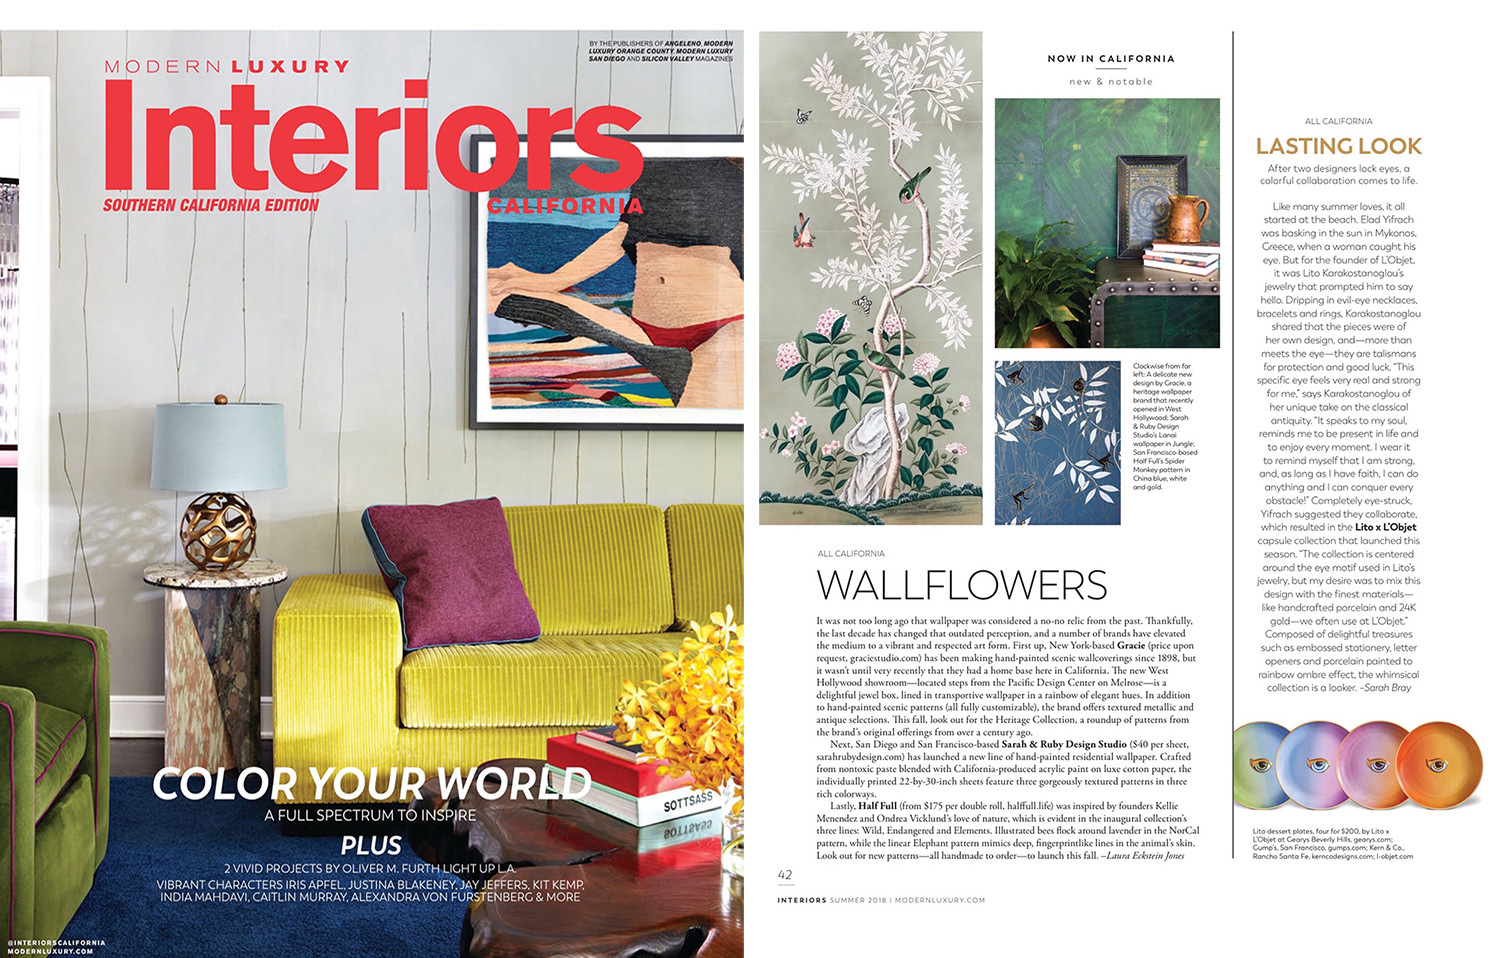 Sarah and Ruby's hand painted sheet wallpaper (Lanai pattern, Jungle green colorway) is shown in Modern Luxury Interiors magazine.